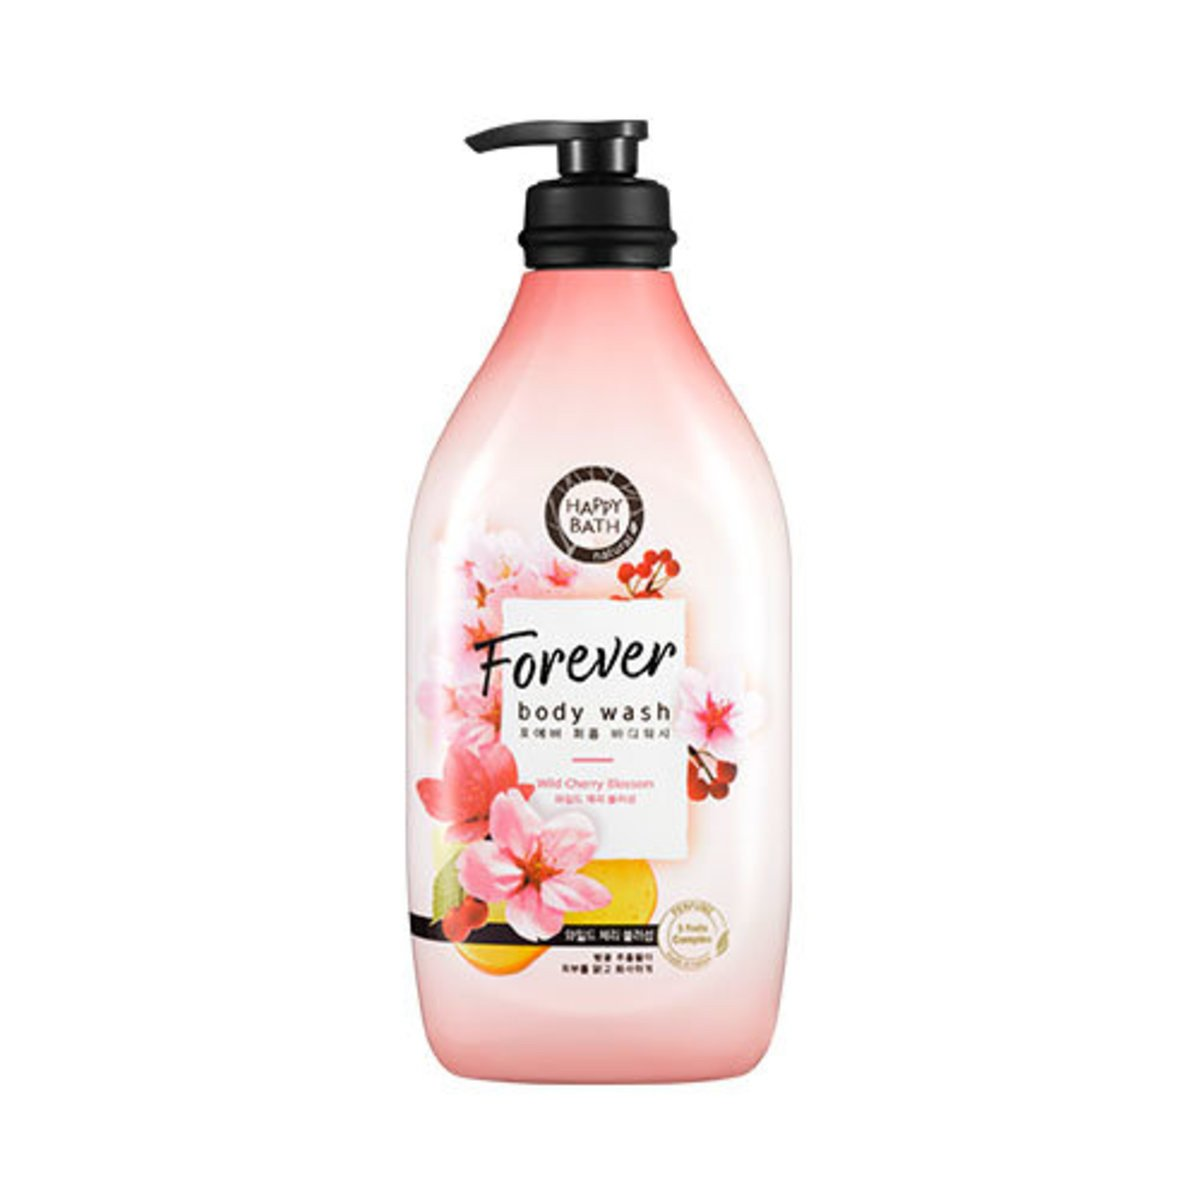 sua-tam-happy-bath-wild-cherry-blossom-body-wash-900g